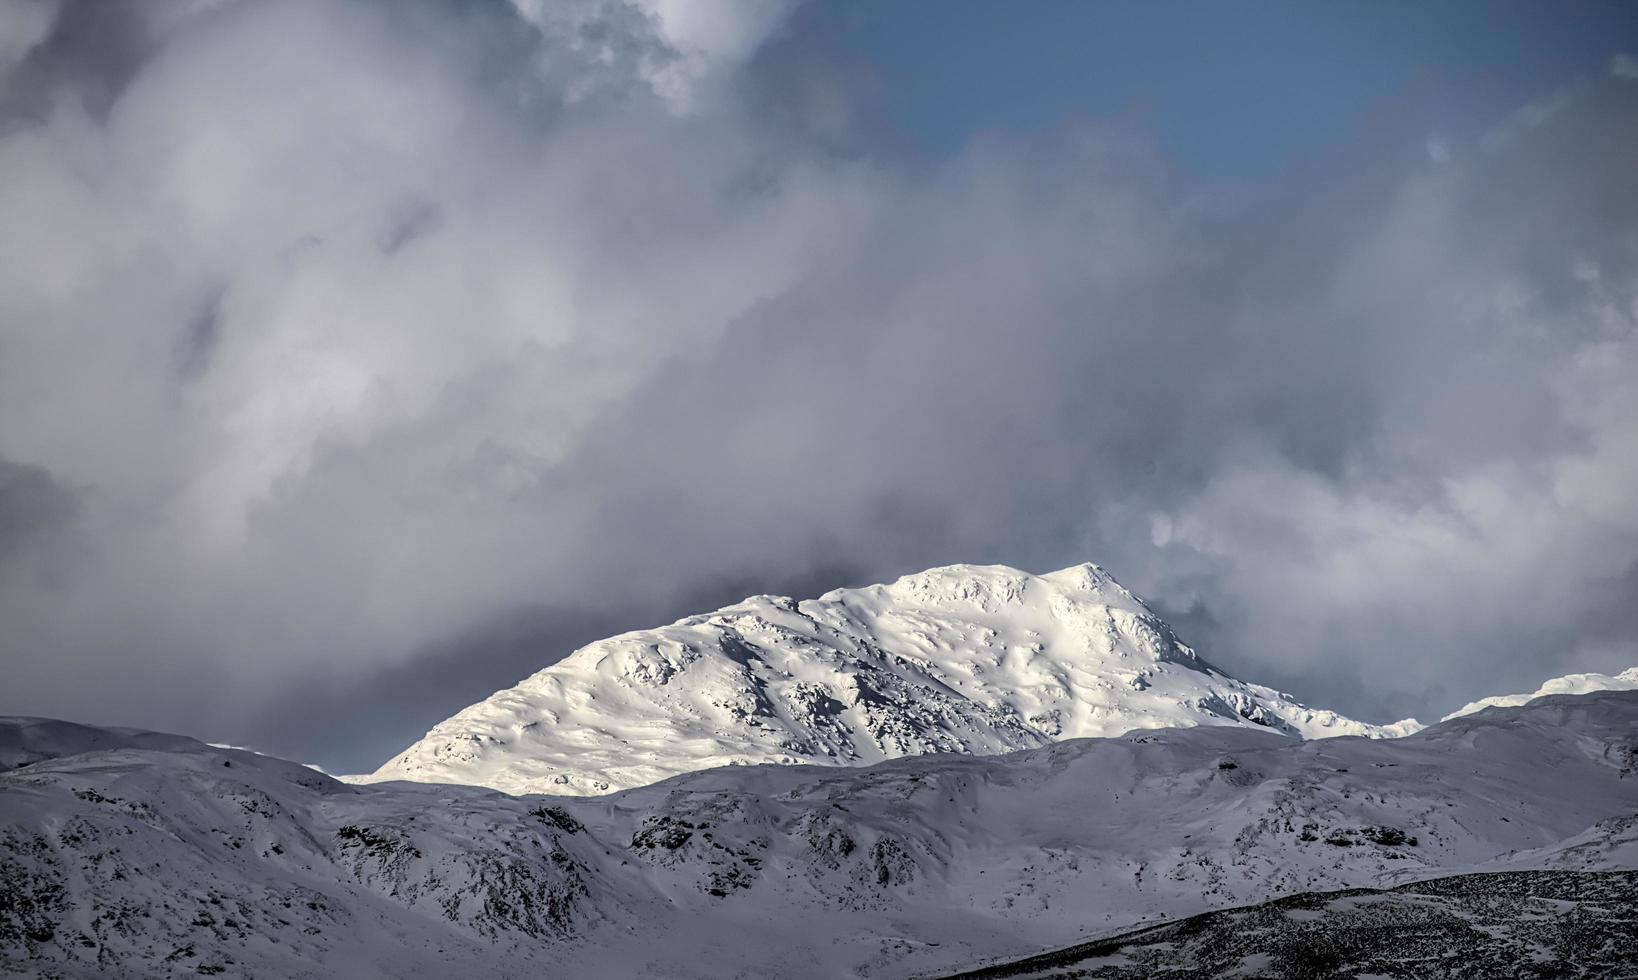 Snowy mountain in the Scottish Highlands photo